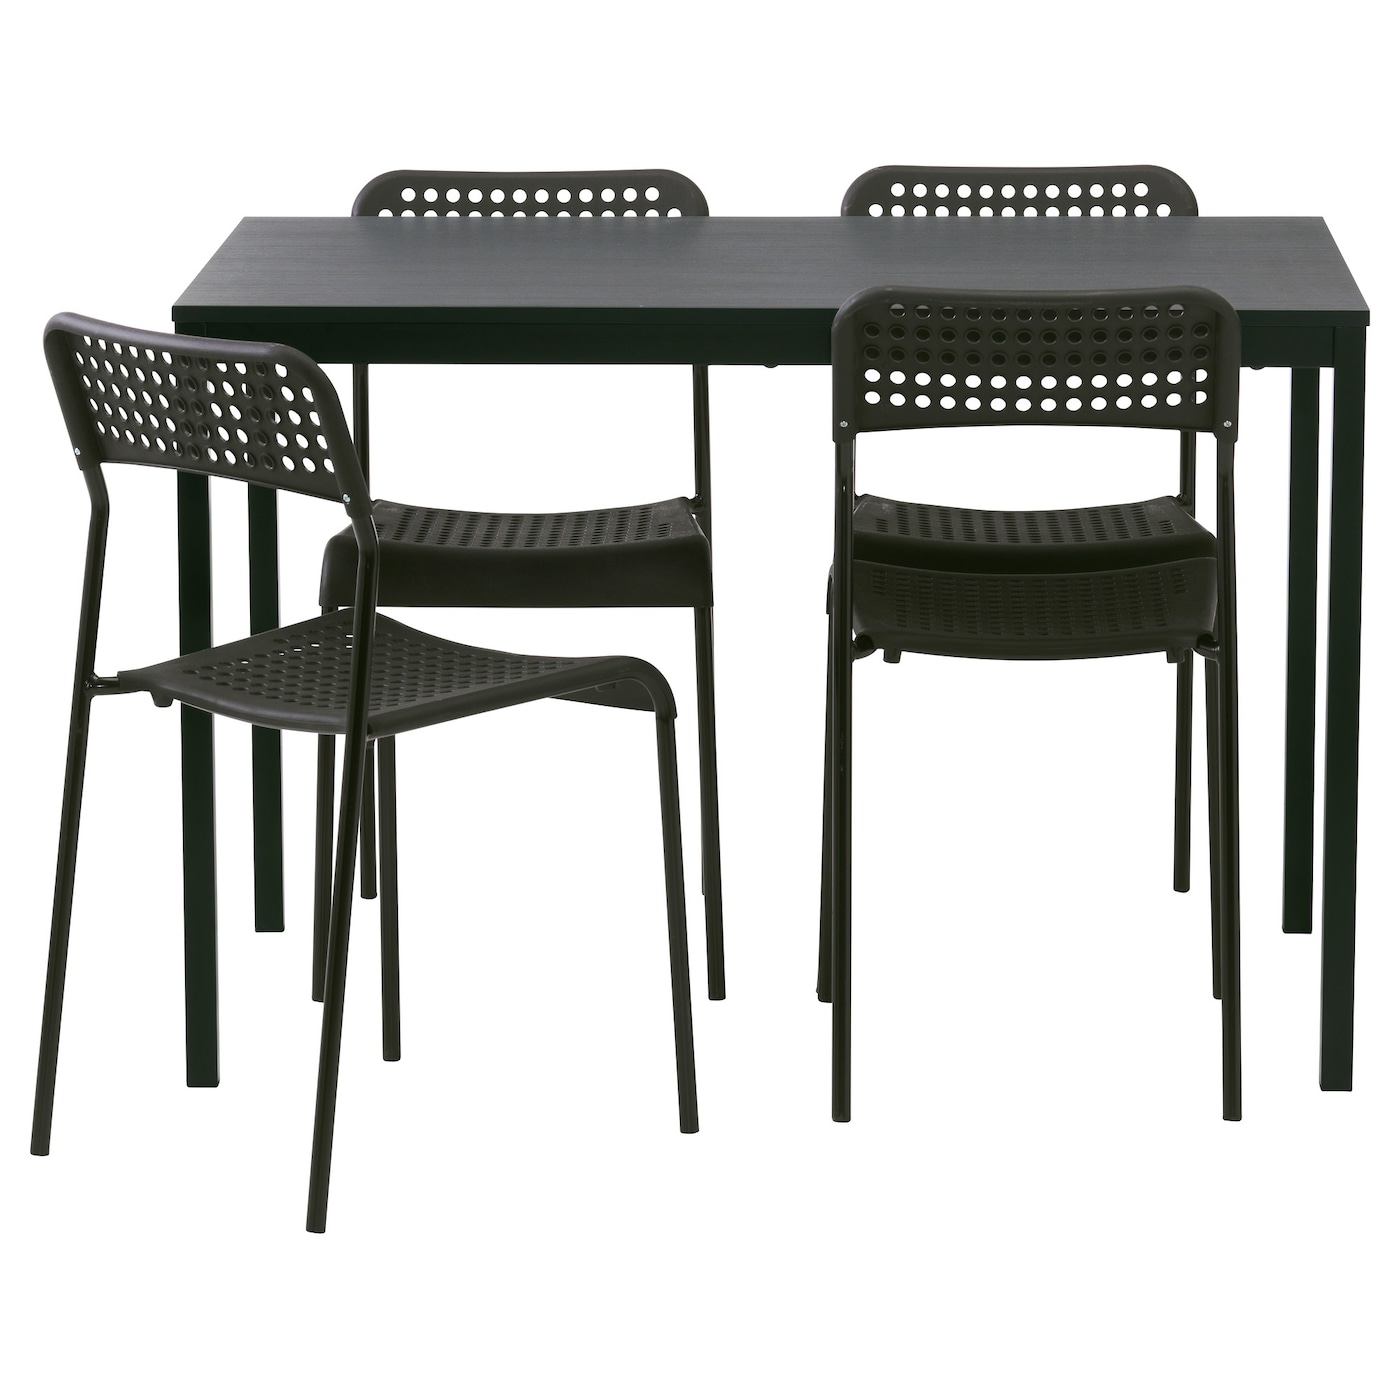 IKEA TARENDO ADDE Table And 4 Chairs